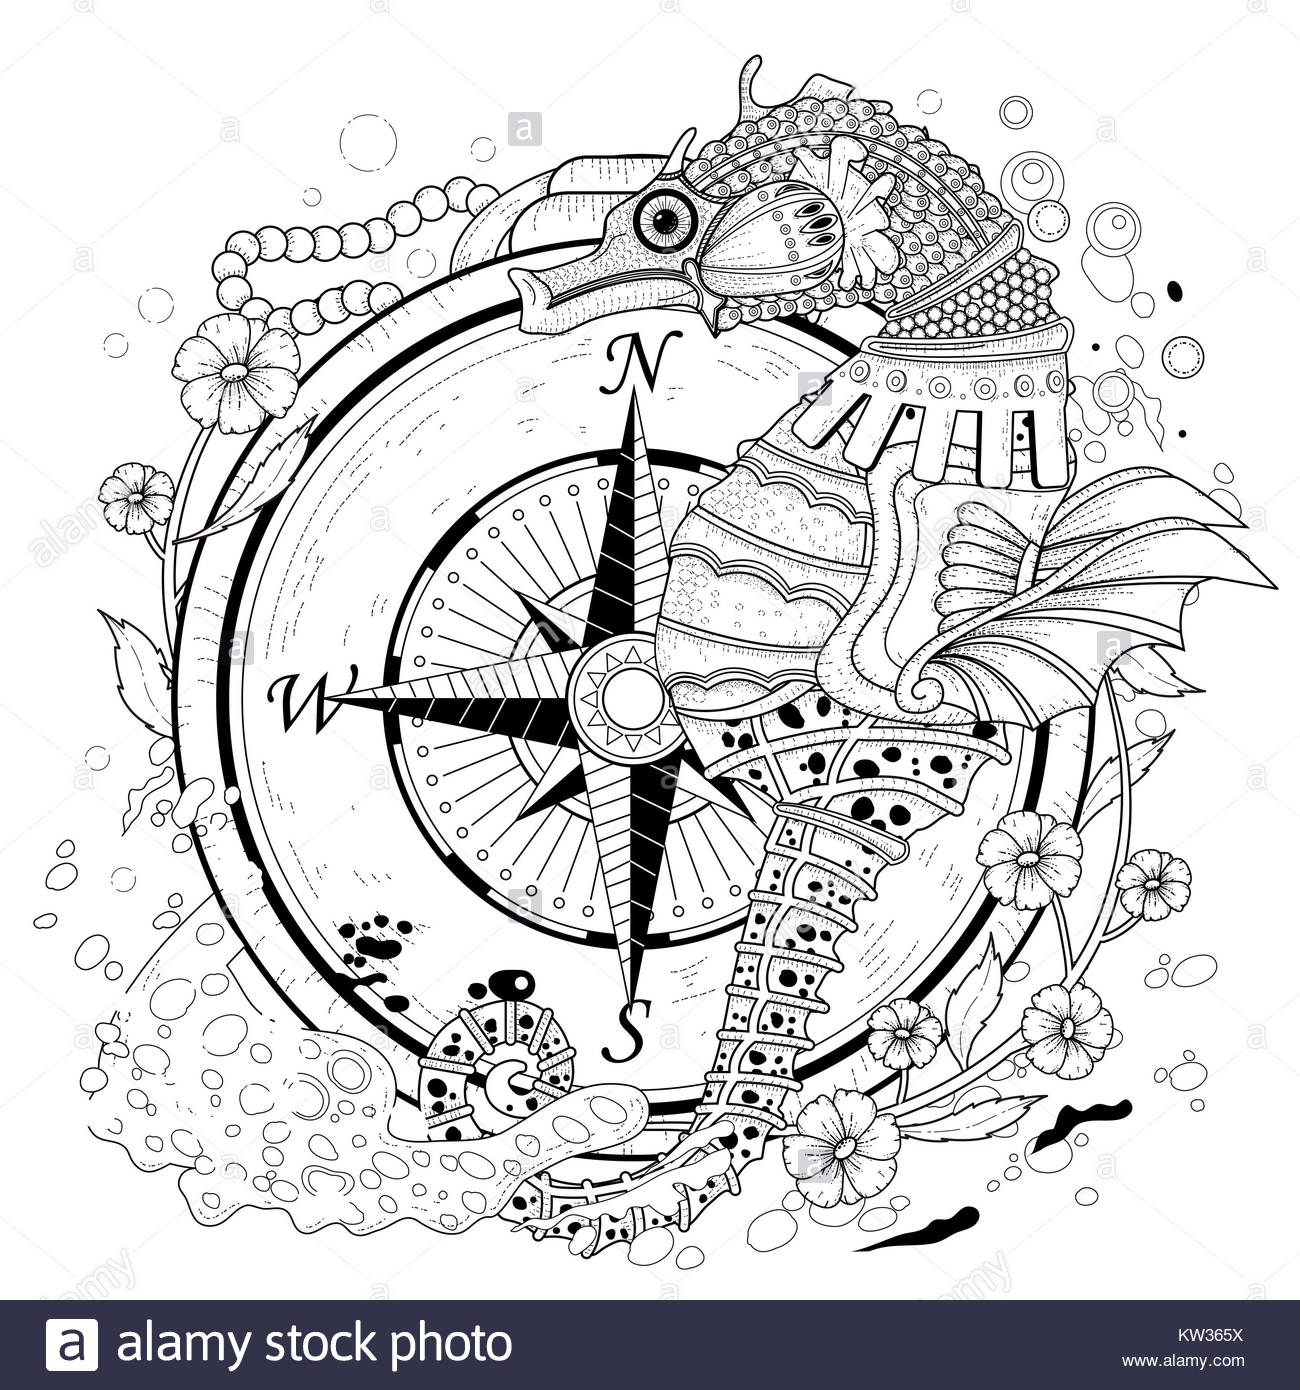 lovely seahorse coloring page in exquisite style Stock Photo ...